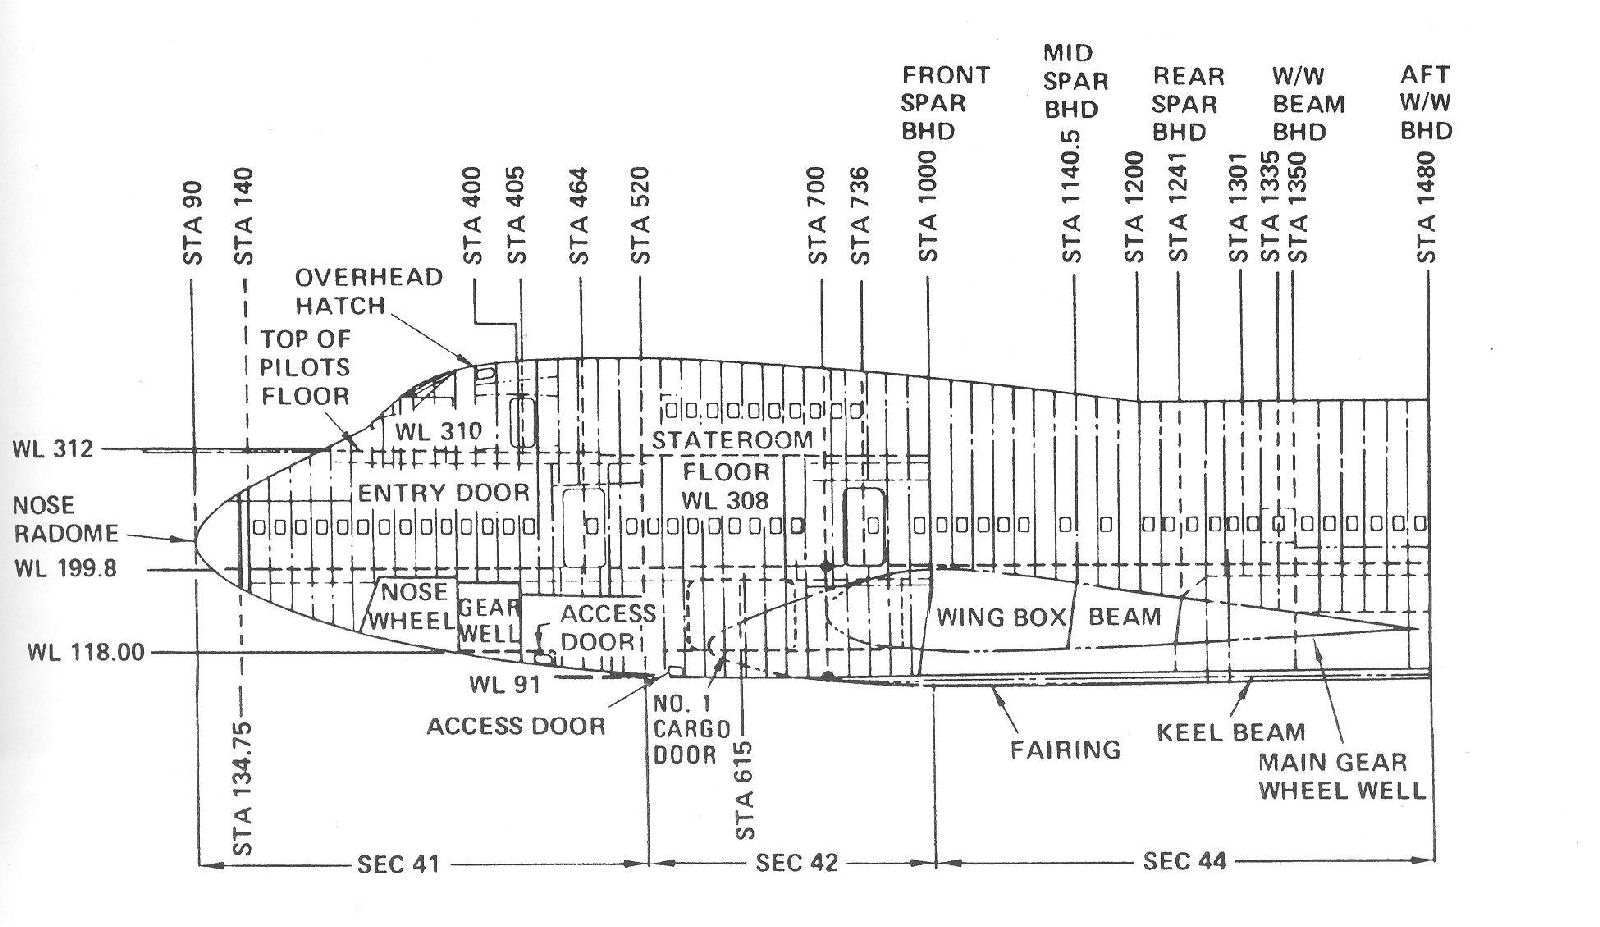 Attachment browser: Boeing 747SP station diagram front.jpg